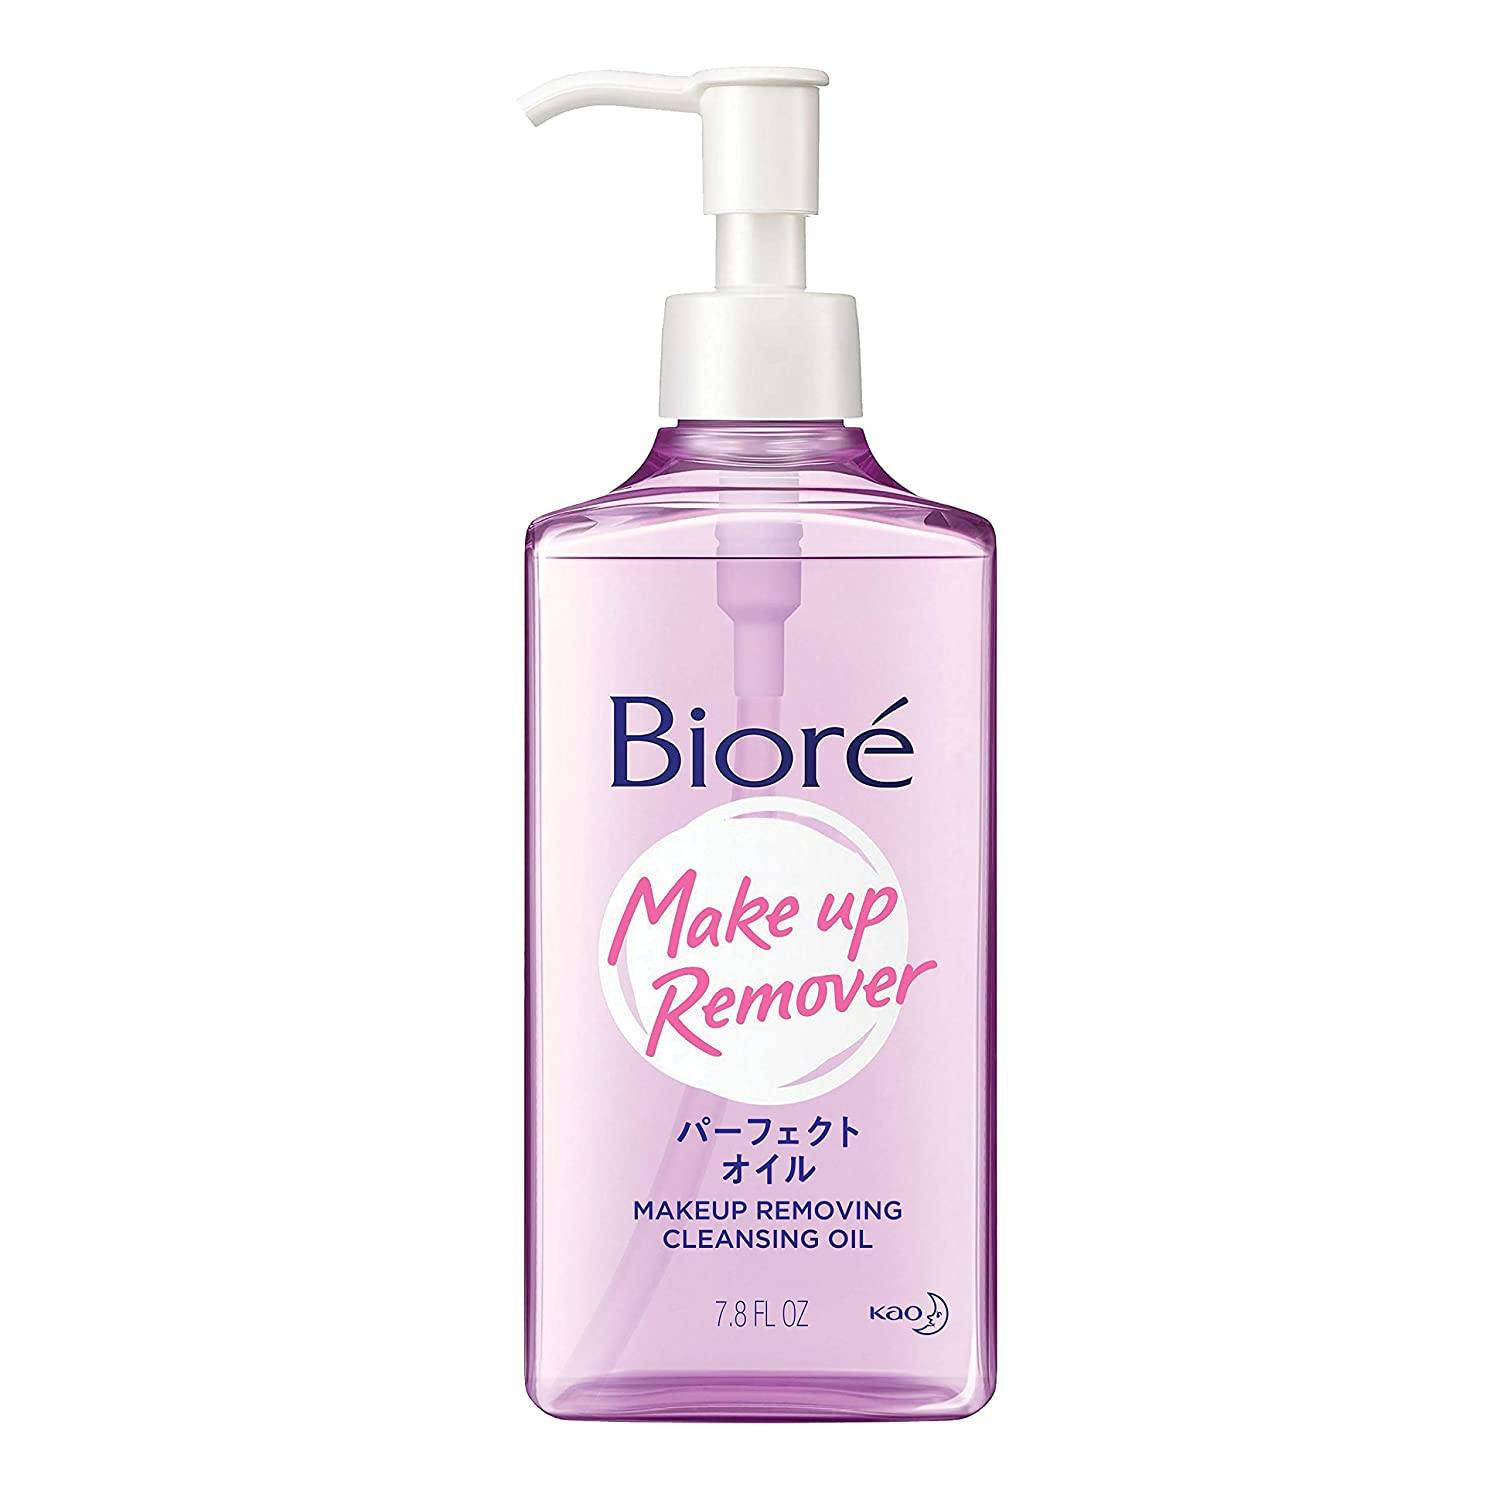 Bioré J-Beauty Makeup Removing Cleansing Top Japanese Ma Oil Dallas Mall Tucson Mall